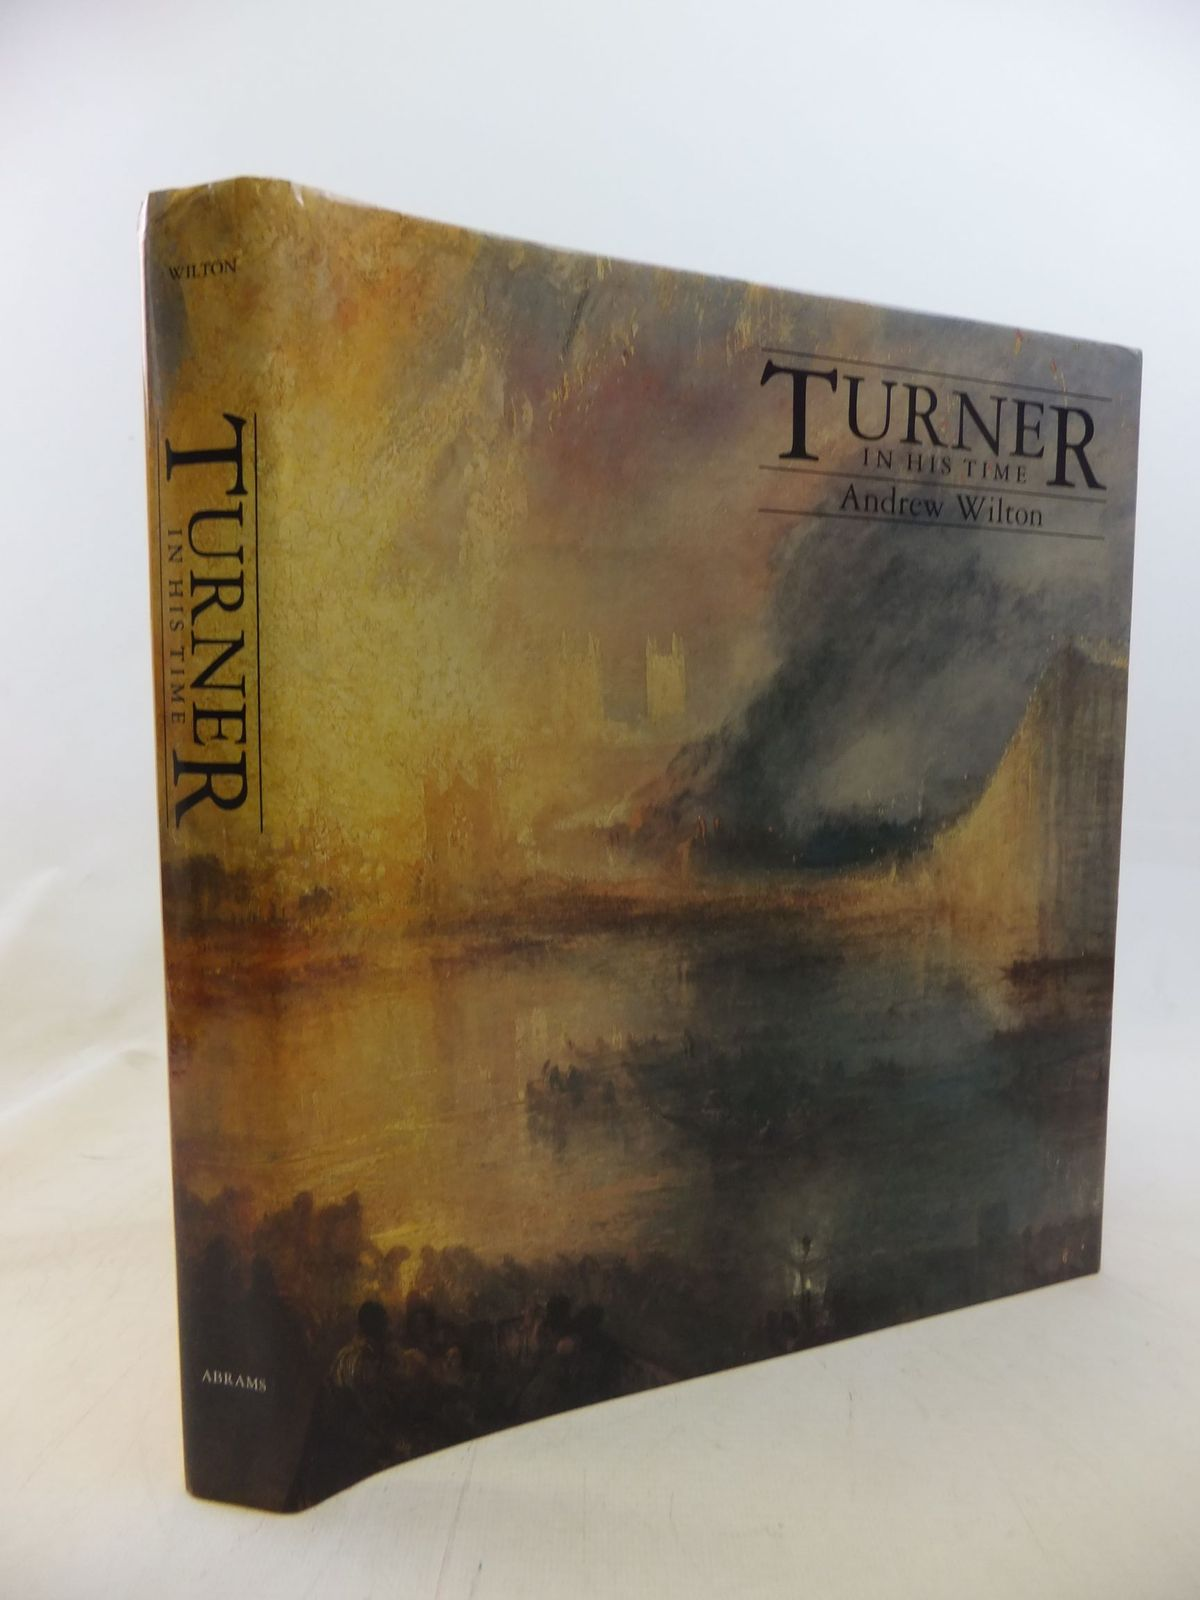 Photo of TURNER IN HIS TIME written by Wilton, Andrew illustrated by Turner, Joseph Mallord William<br />Turner, J.M.W. published by Harry N. Abrams, Inc. (STOCK CODE: 1711646)  for sale by Stella & Rose's Books